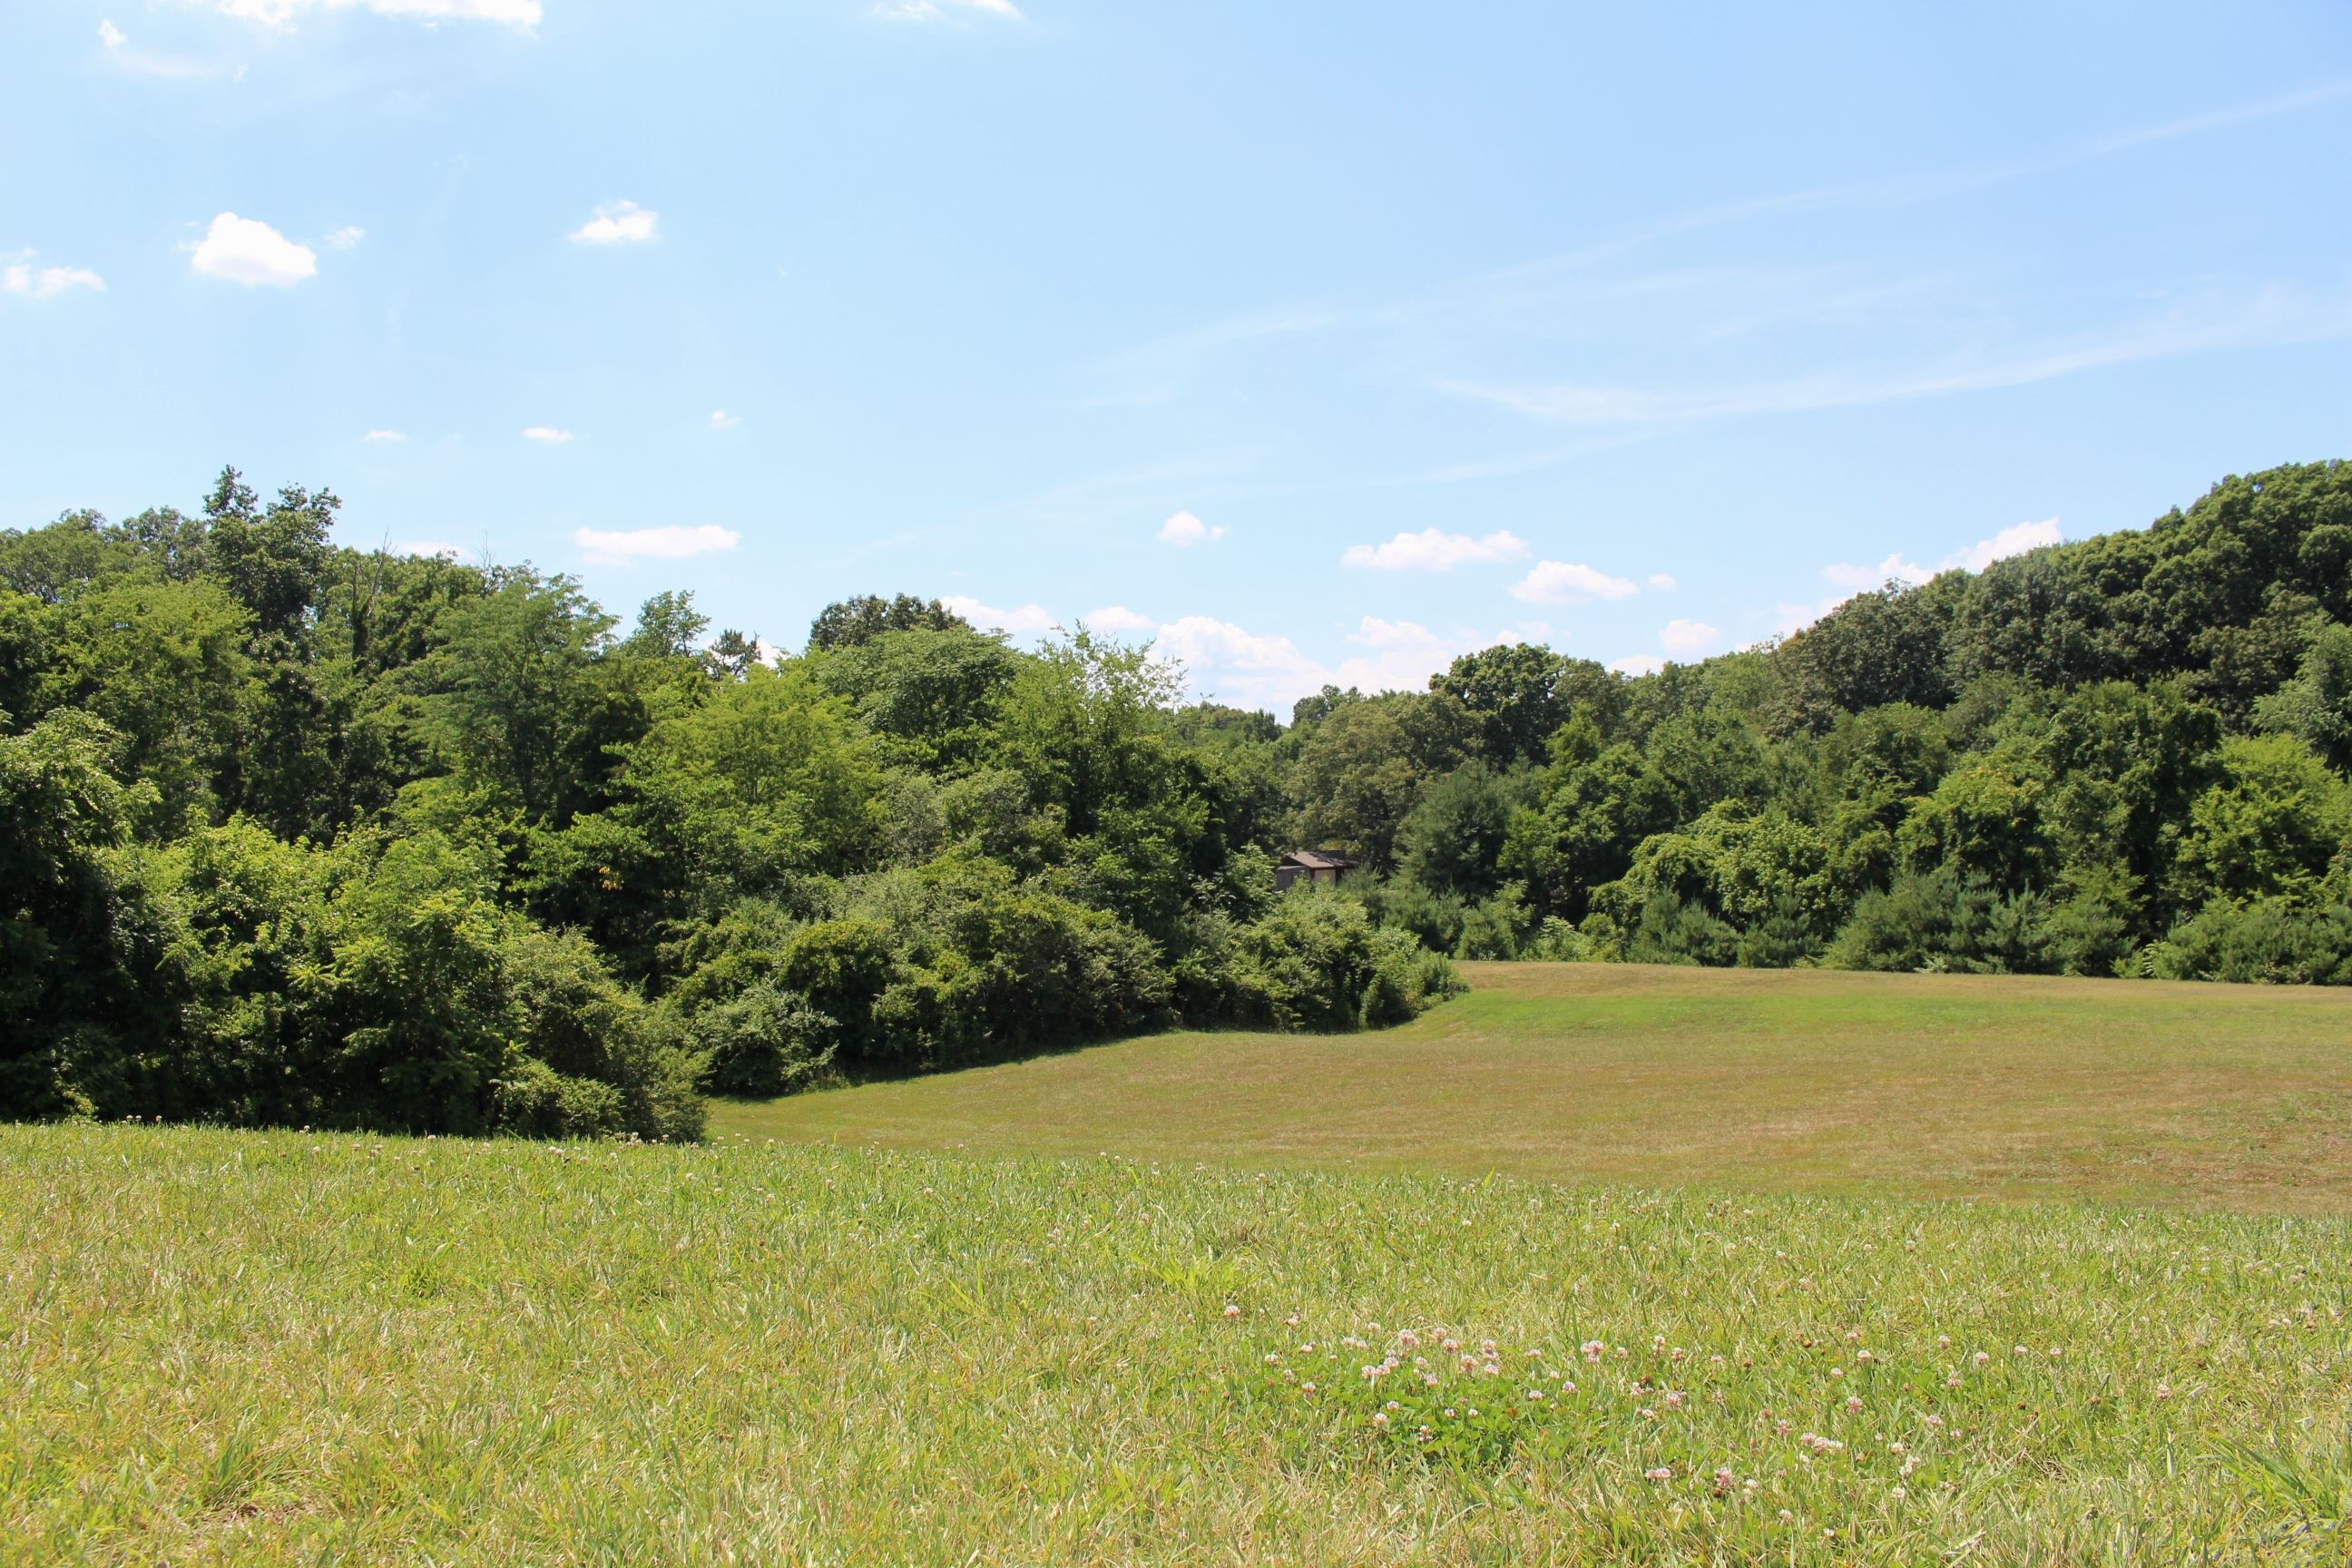 A photo of the undeveloped area at McFee Park